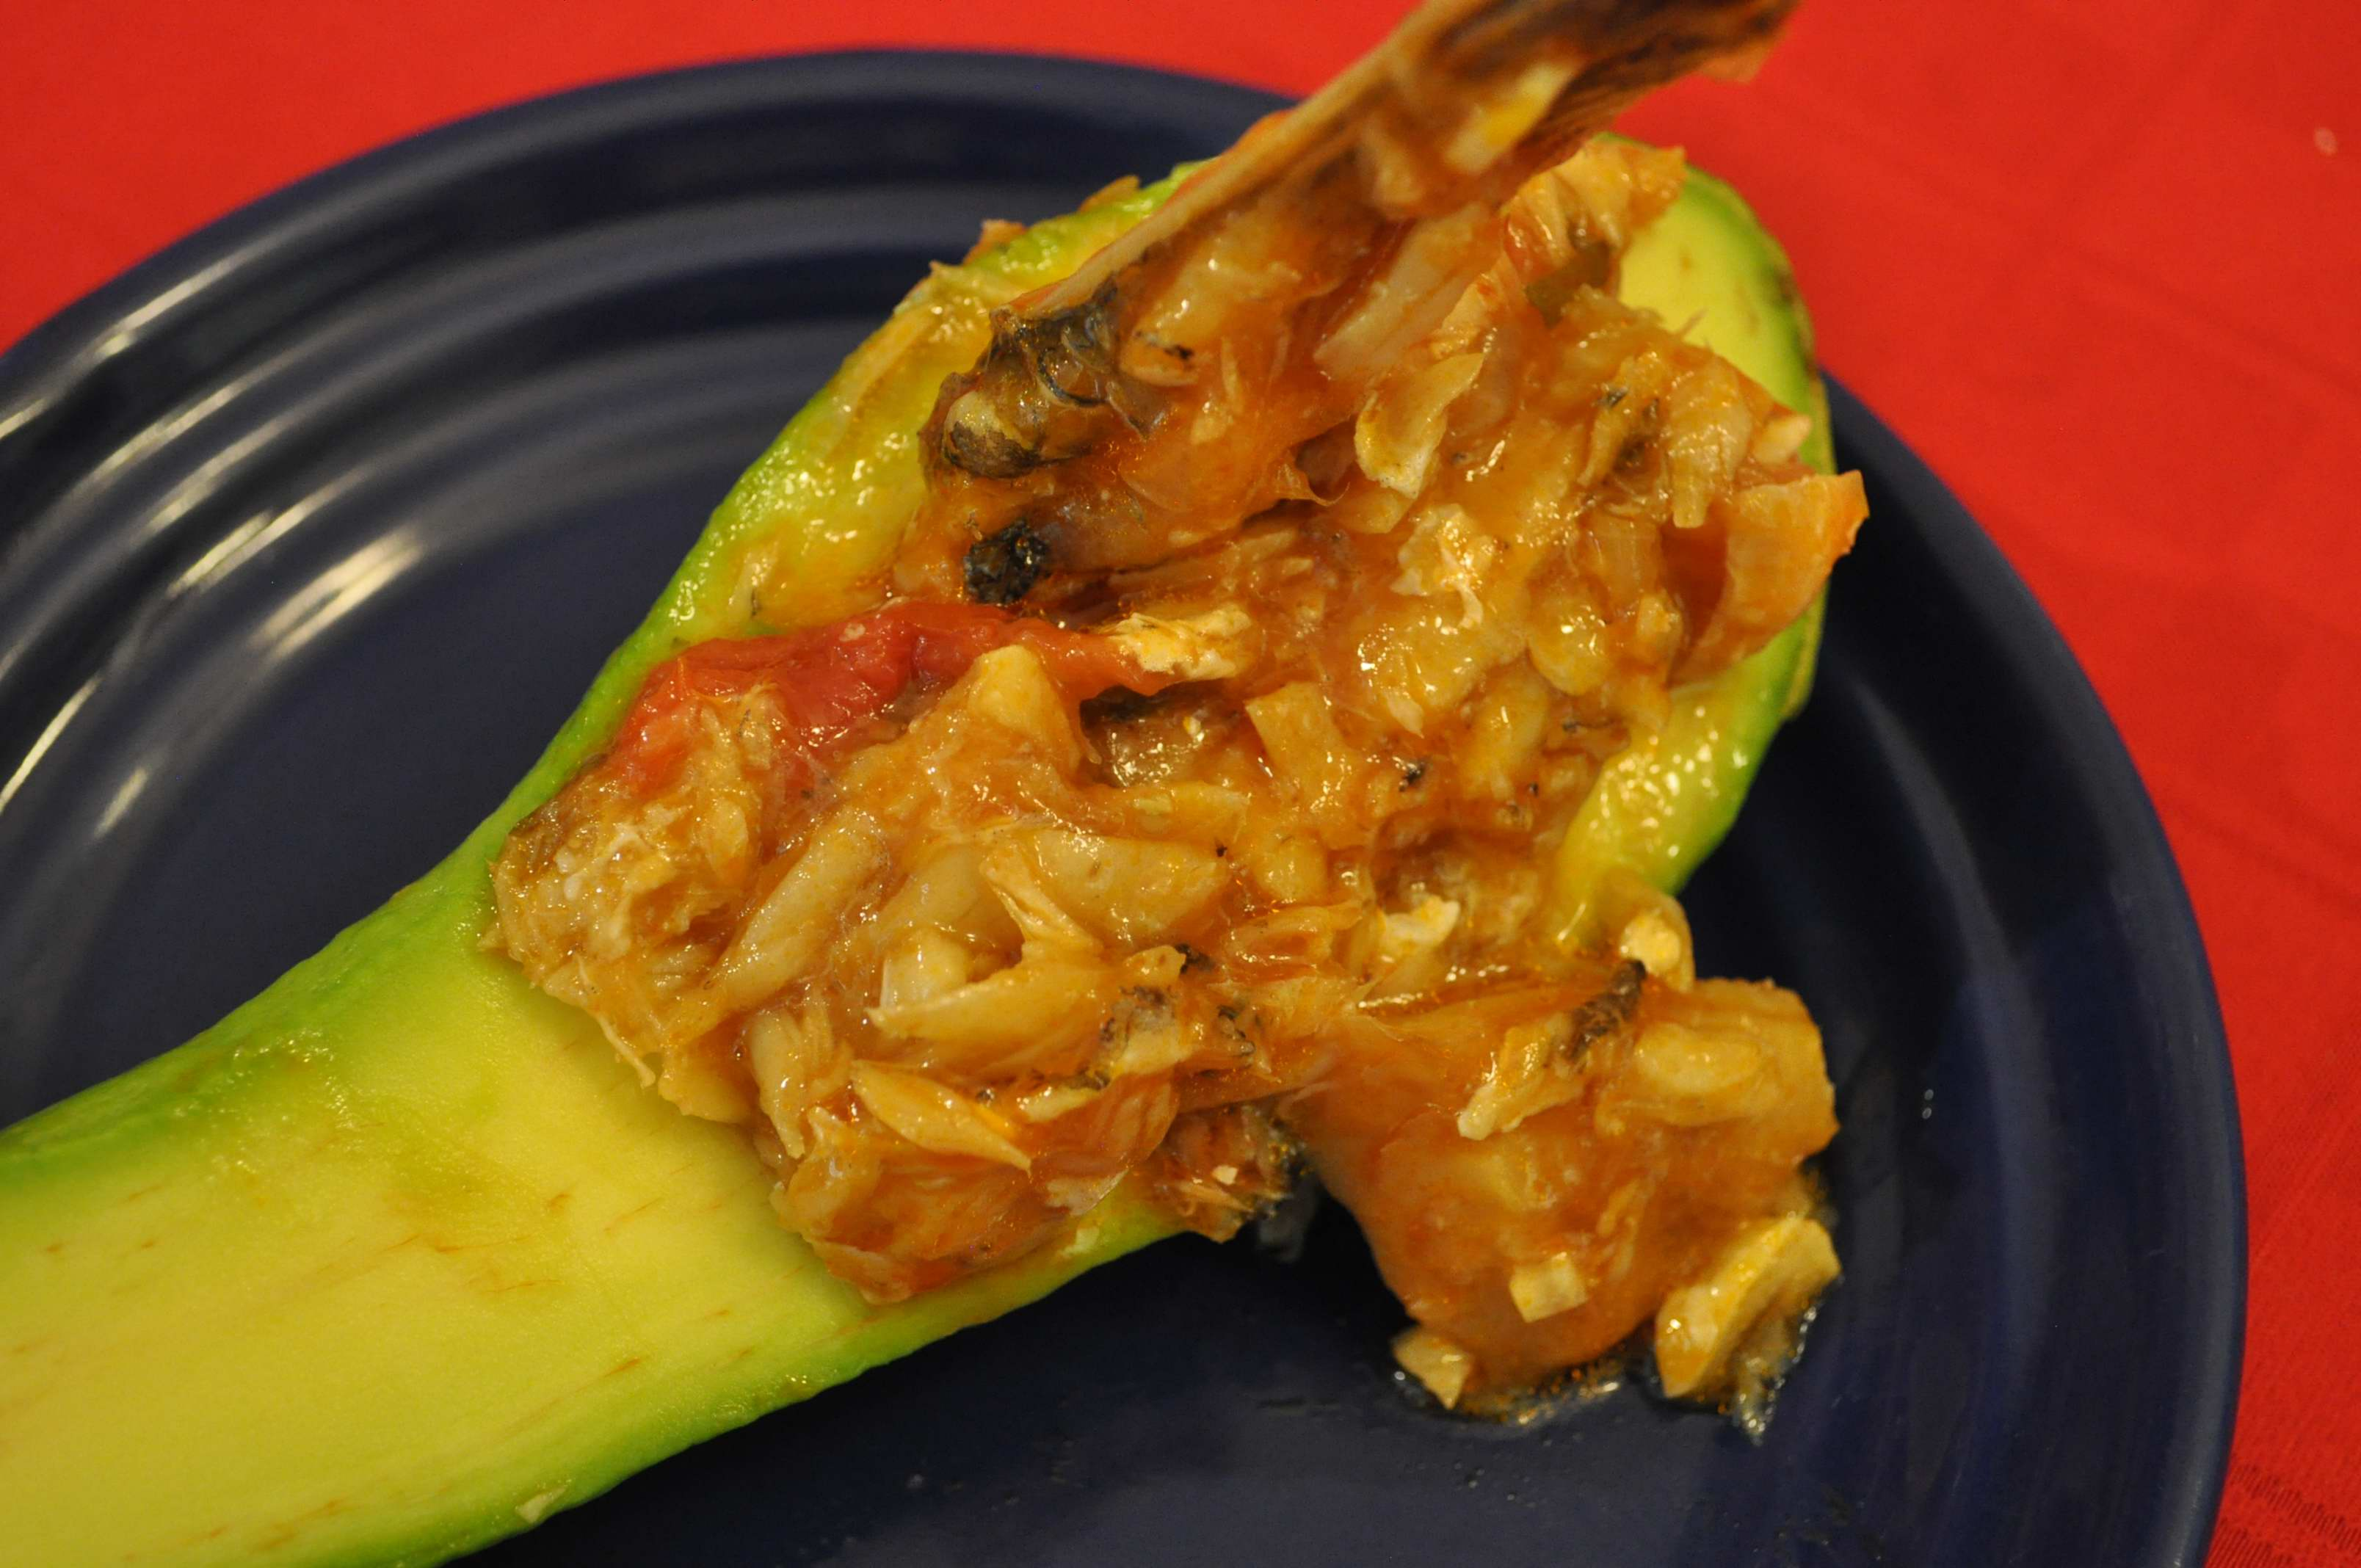 stuffed avocado with basque style cod fish